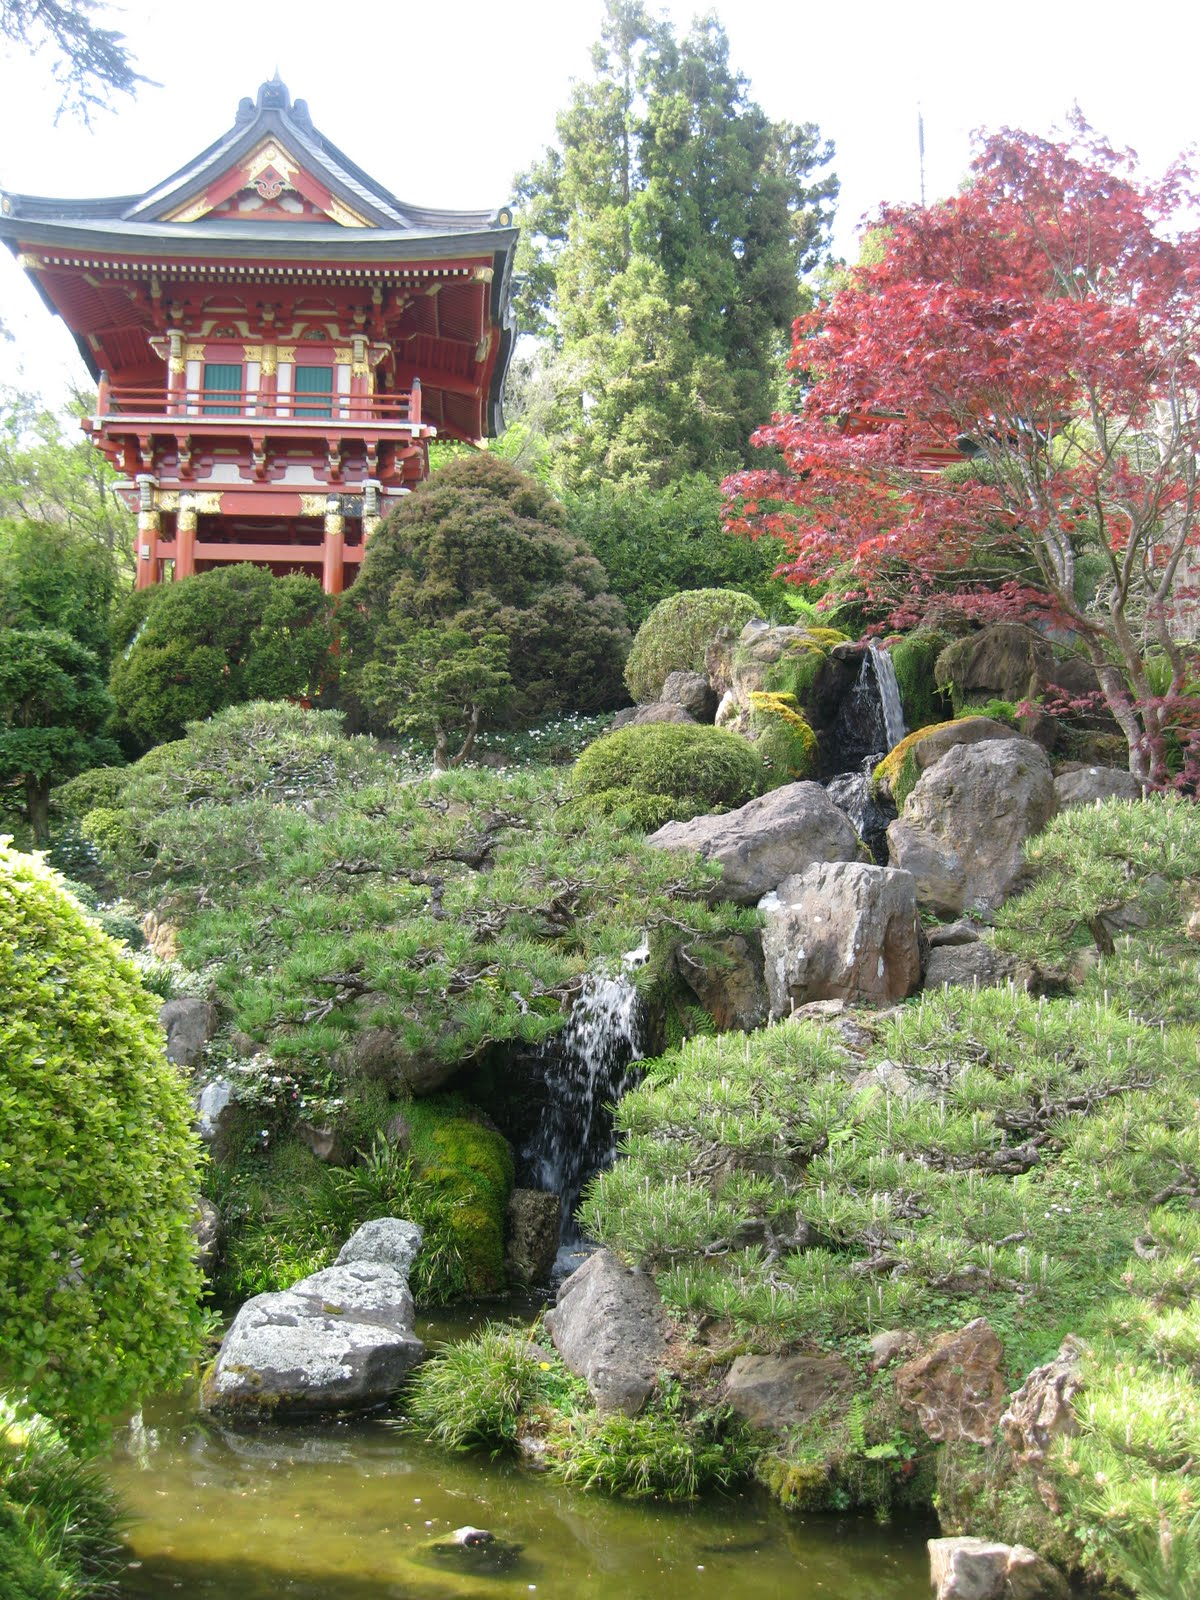 School For Us: Japanese Tea Garden (Day 5 SF Trip